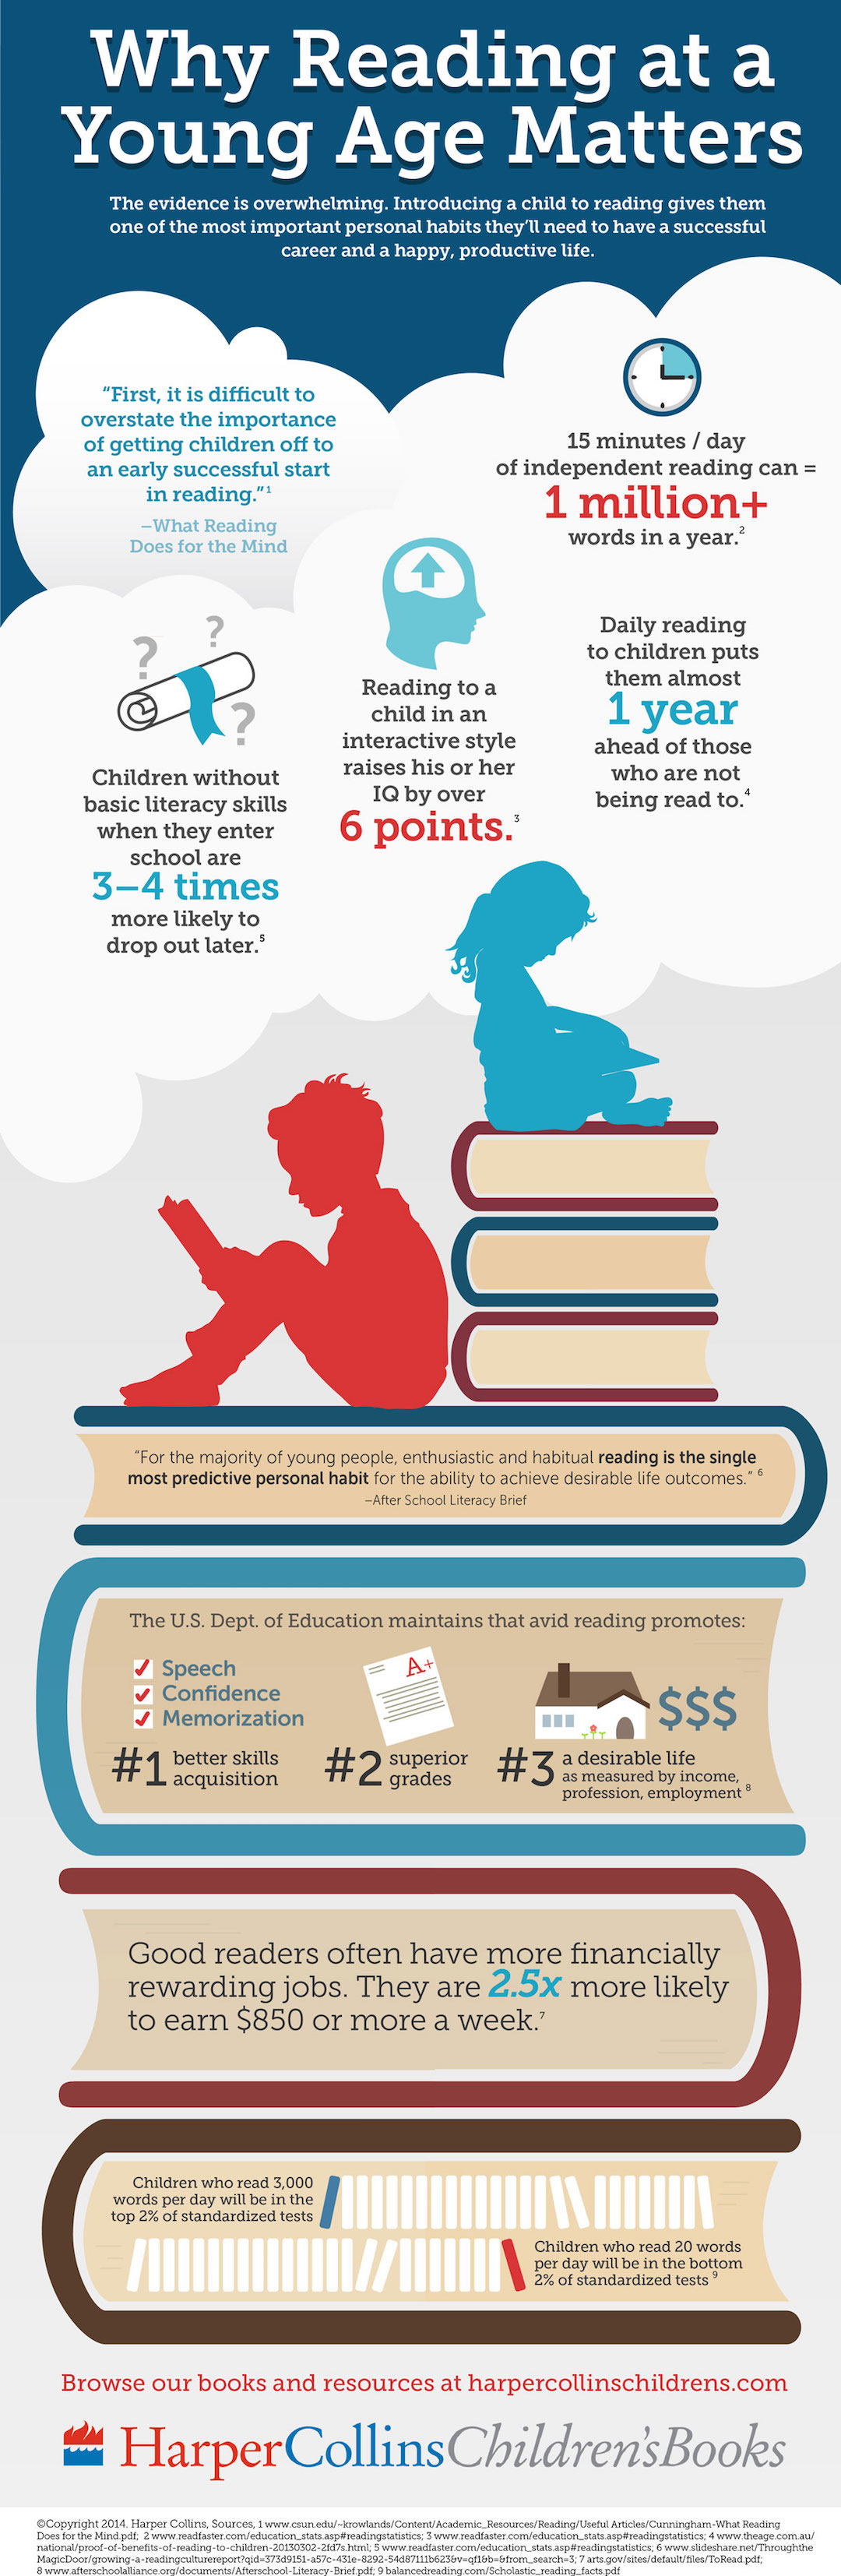 Why reading at young age matters #infographic